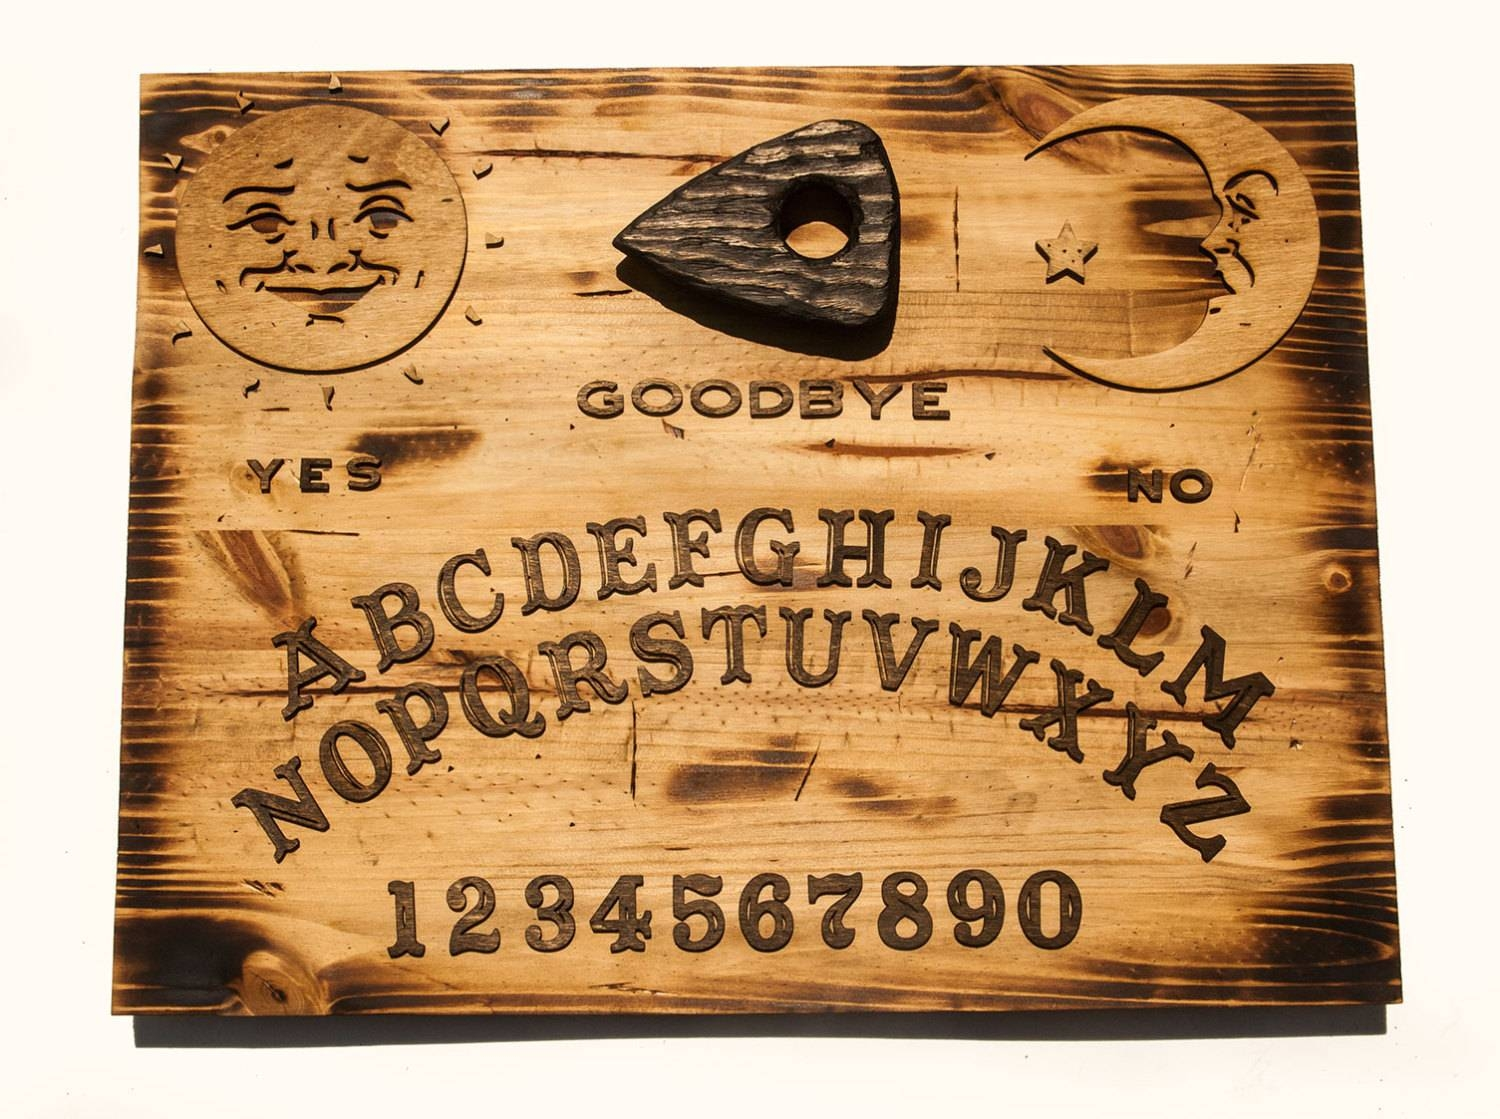 3D Sculptured Wall Hanging Wooden Ouija Board Art (View 5 of 20)